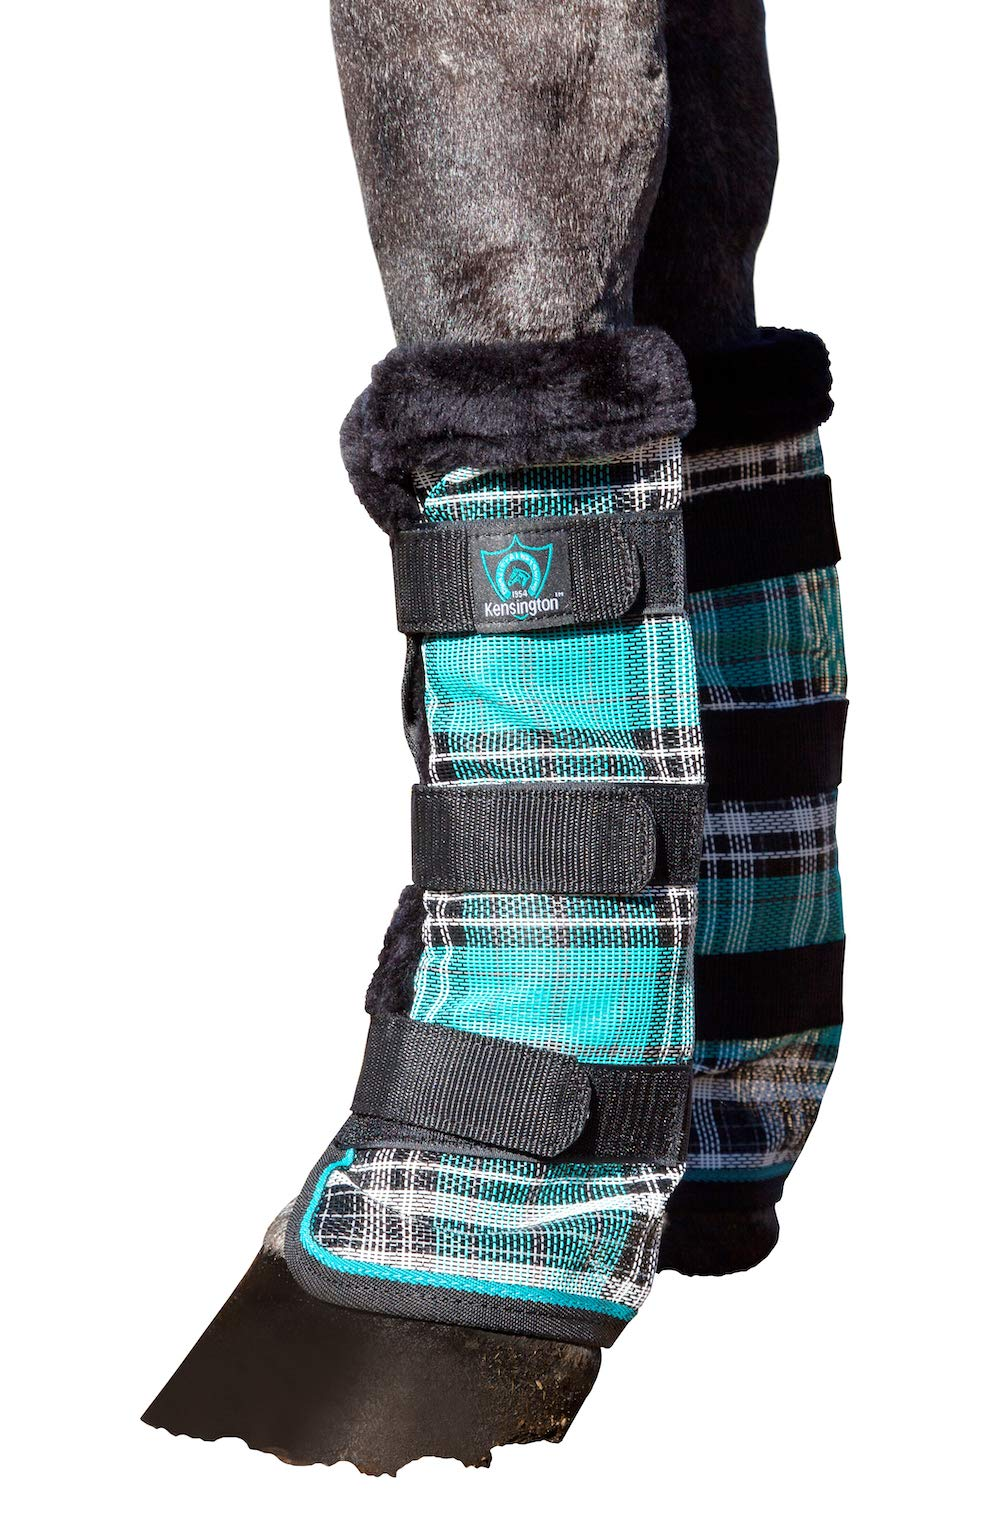 Kensington Natural Horse Fly Boots - Fleece Trimmed - Stay-Up Technology - Protection from Insect Bites and UV Rays - Sold in Pairs (2 Boots) - Medium - Black Ice